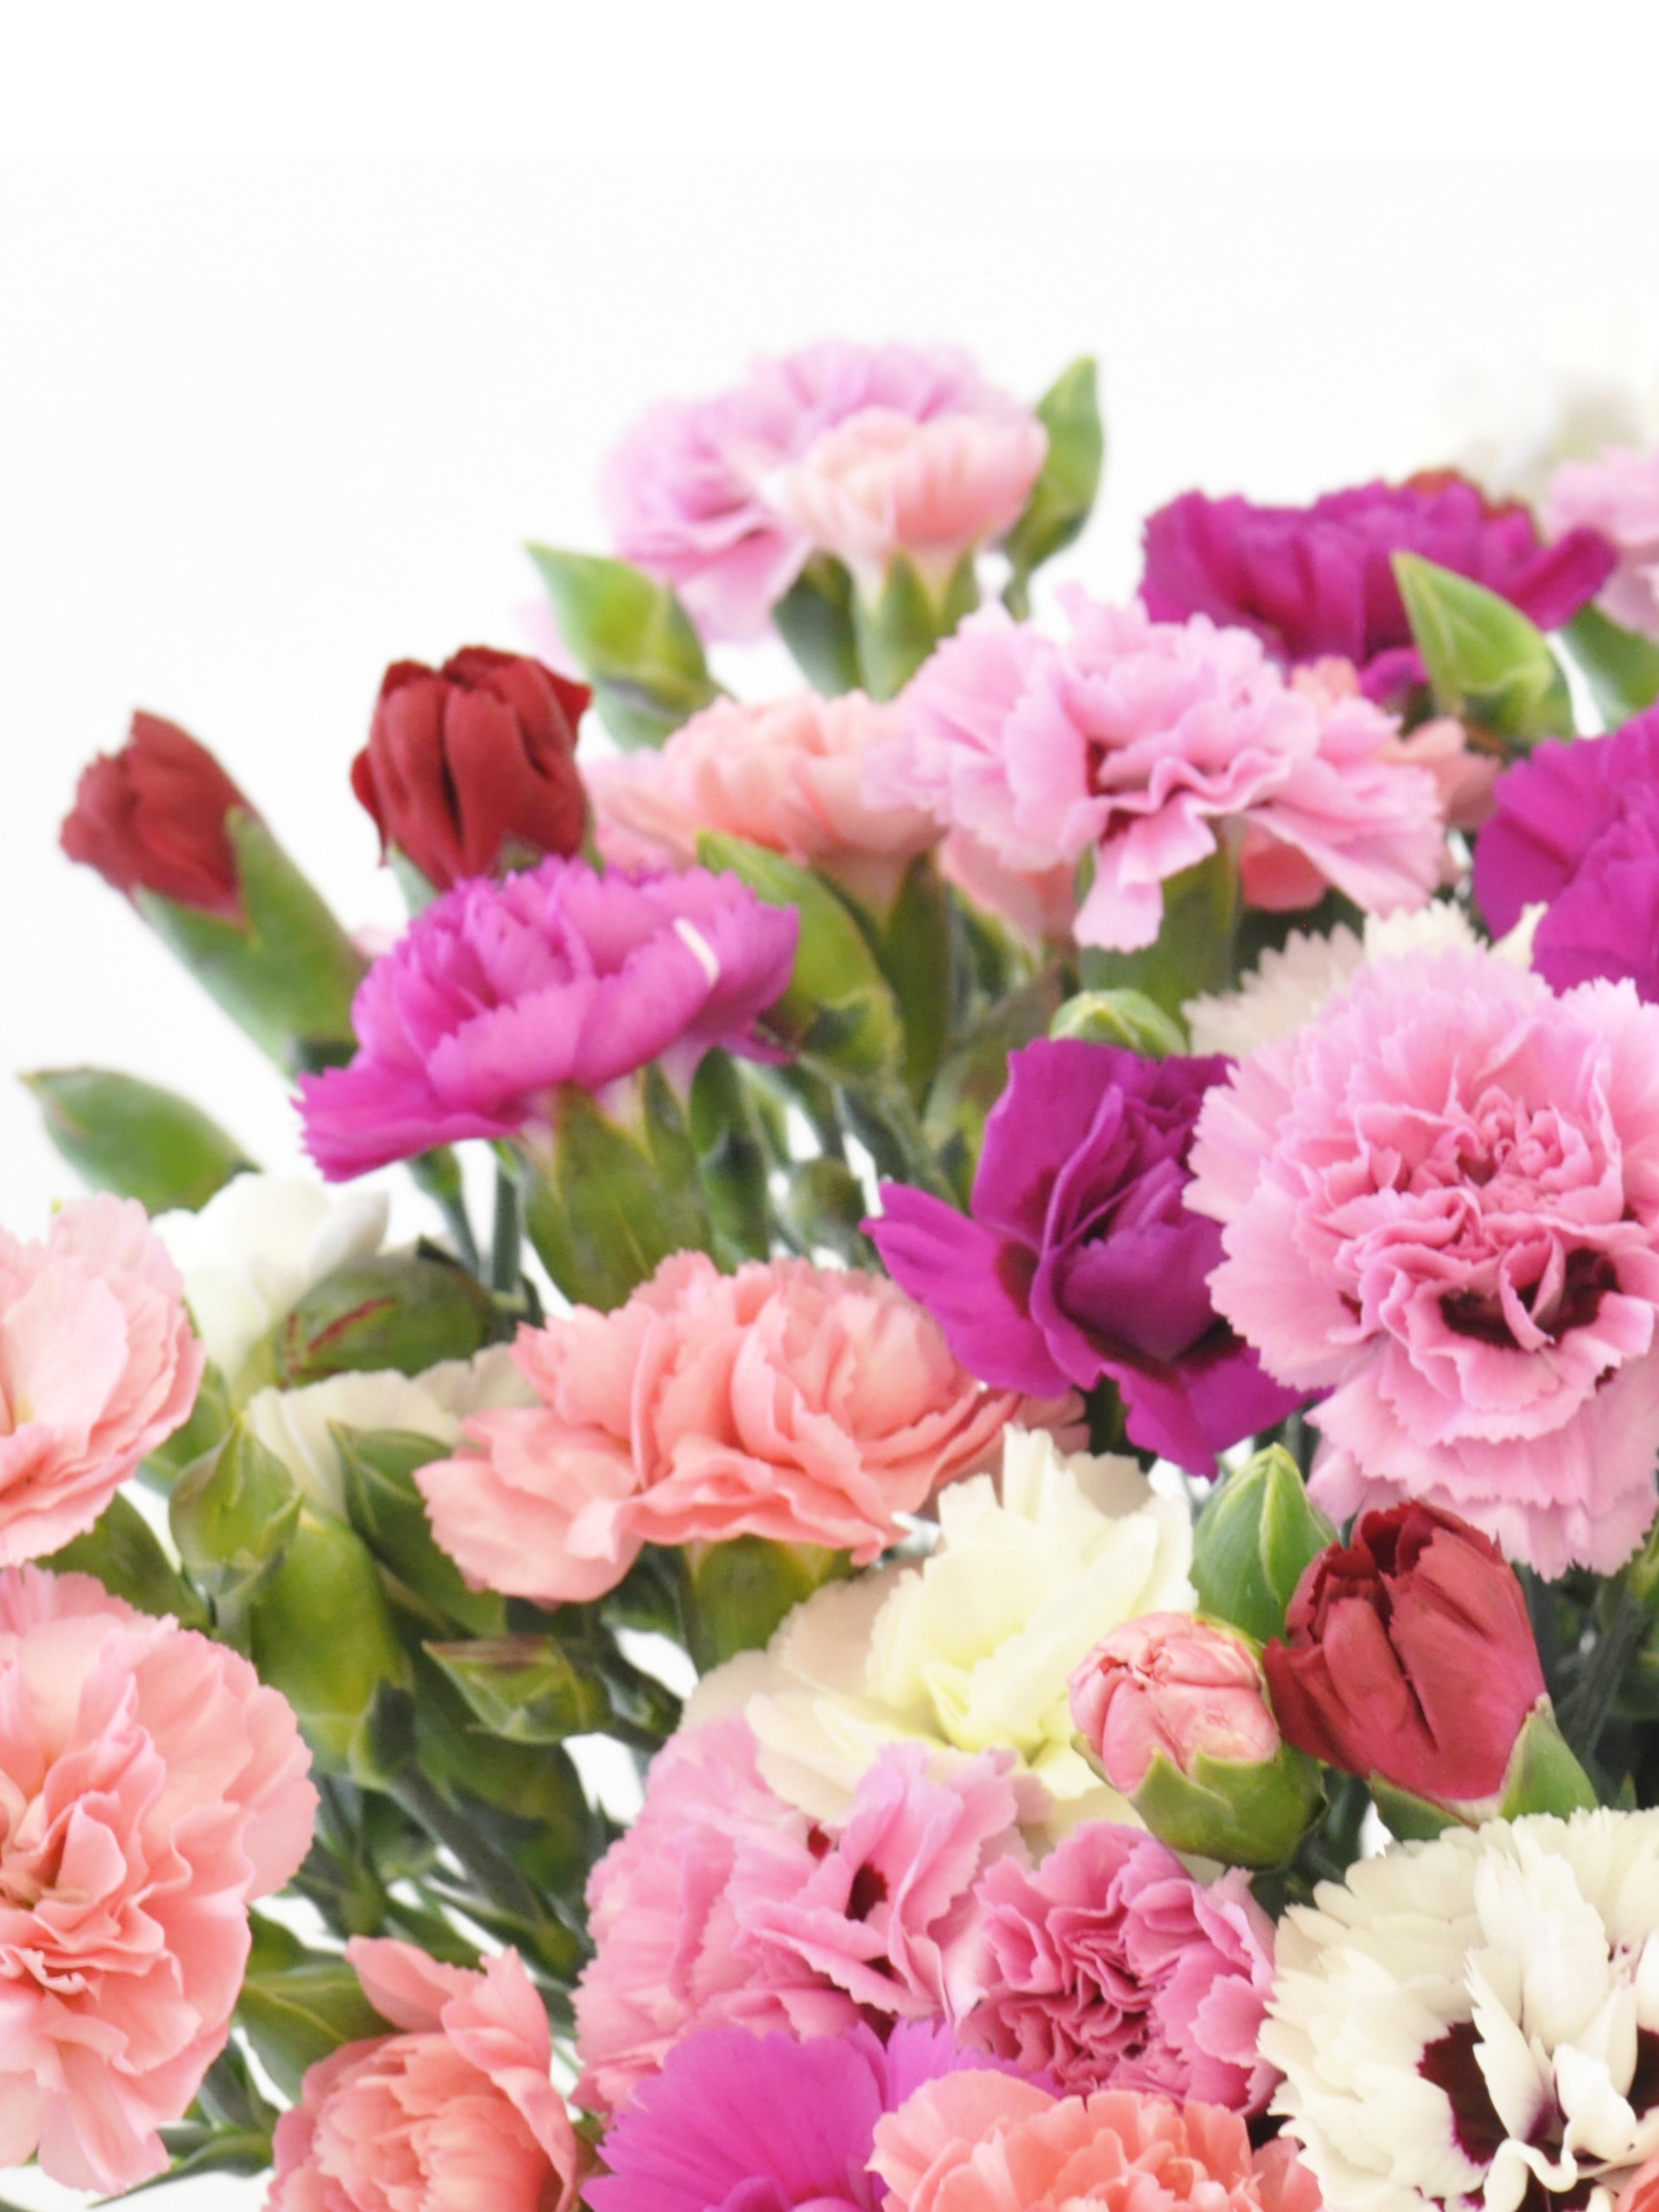 40 stems of scented pinks cornish blooms our scented pinks flowers are in flower from may october we grow a range of colours including pale pink white lilac purple and red mightylinksfo Choice Image